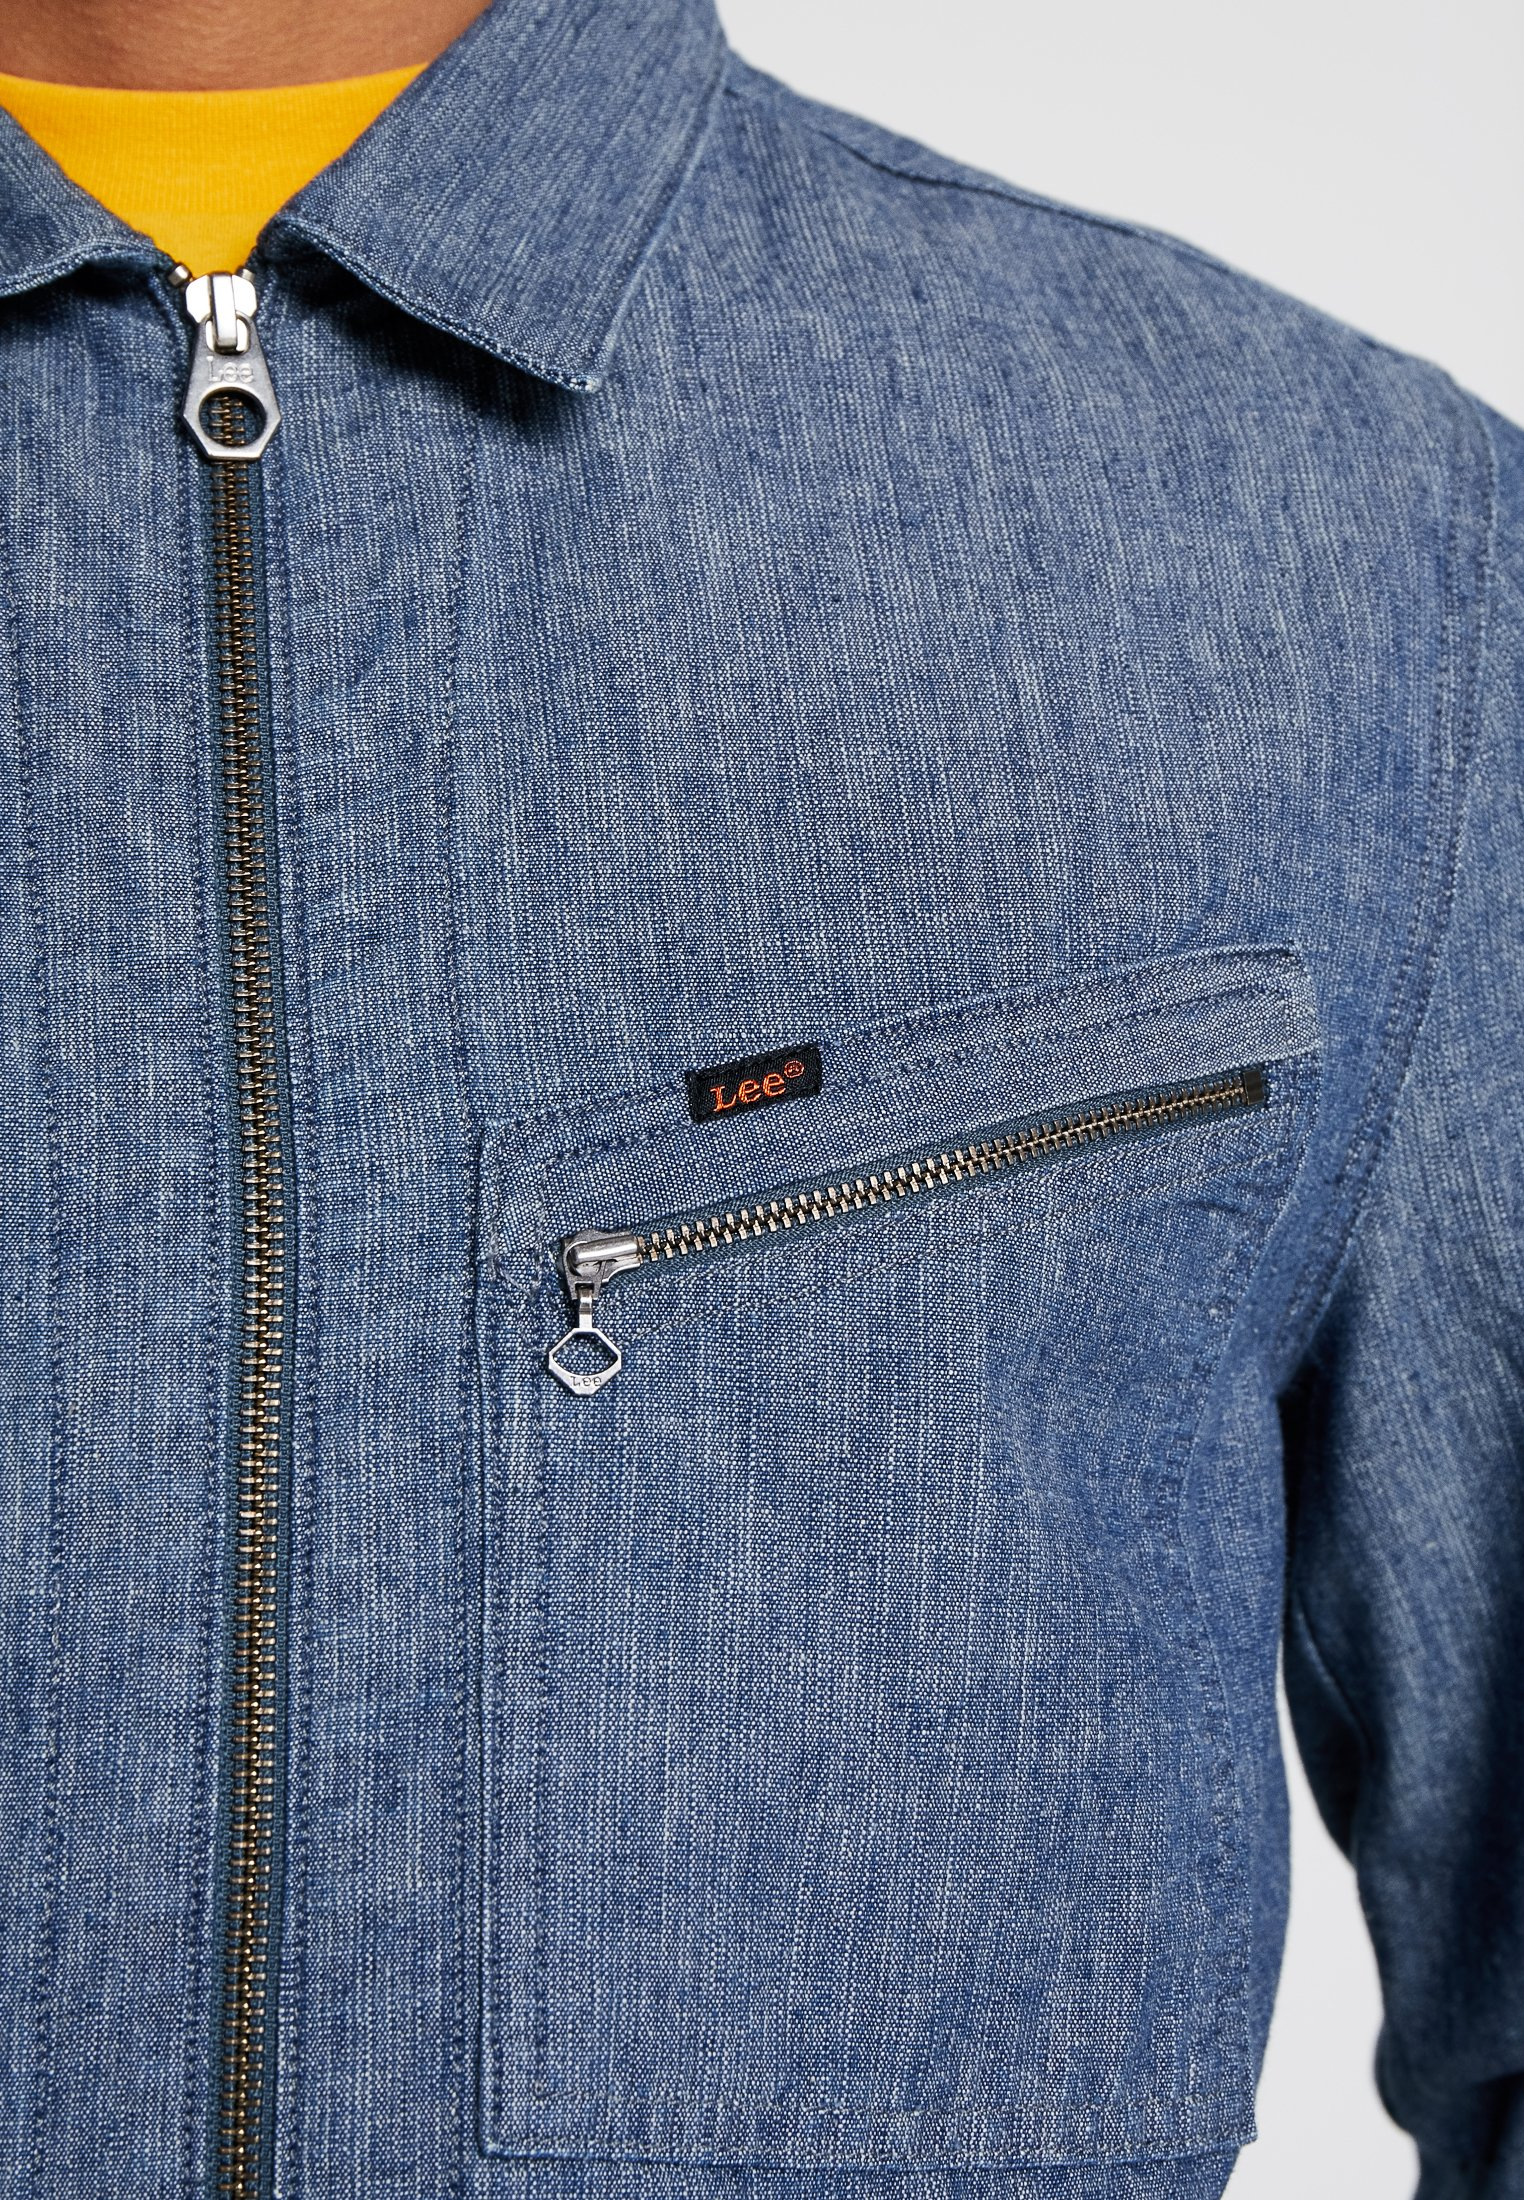 191j Jean En Lee JacketVeste Chambray CxthrdQs